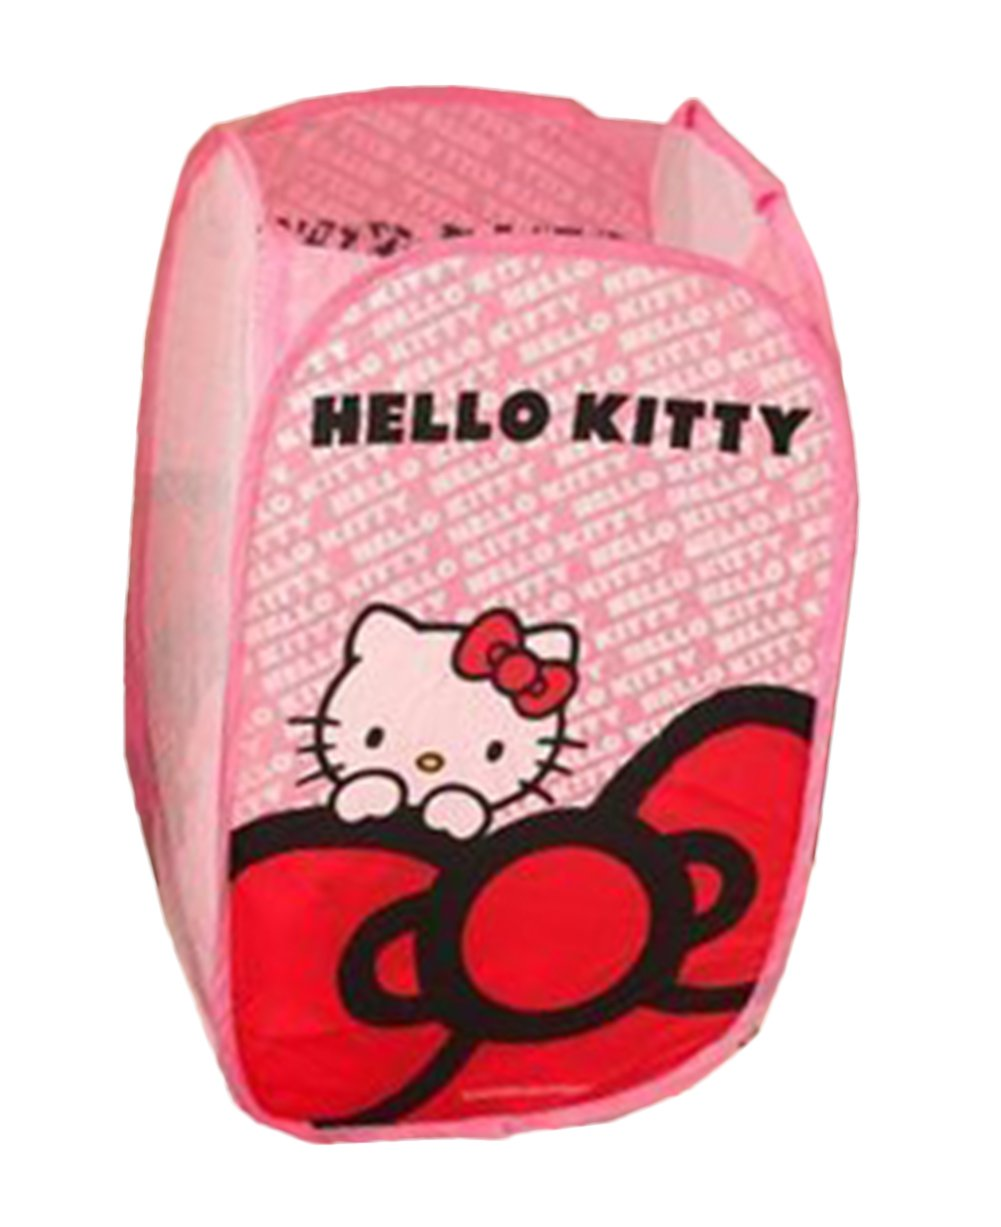 EKEA-Home Cartoon Cute Animal Hello Kitty Foldable Laundry Basket Barrels Underwear Children Toys Clutter Storage Basket Pink